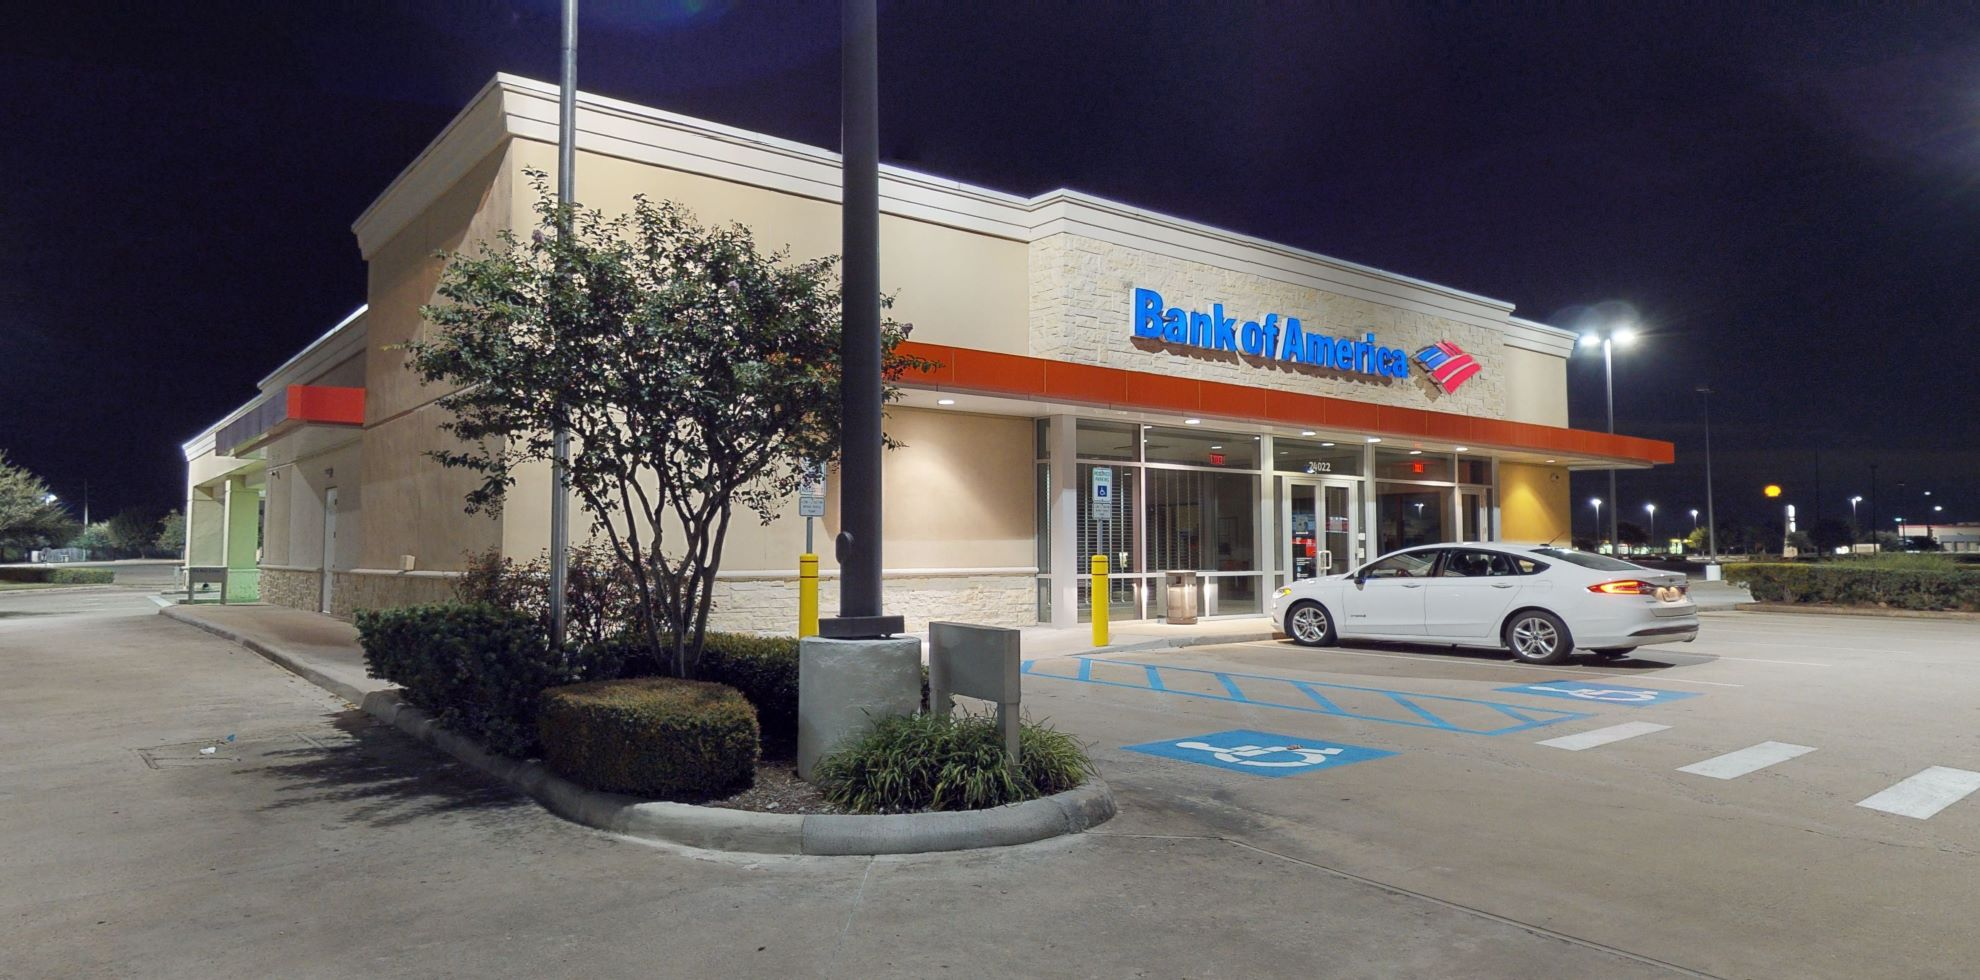 Bank of America financial center with drive-thru ATM   24022 Commercial Dr, Rosenberg, TX 77471